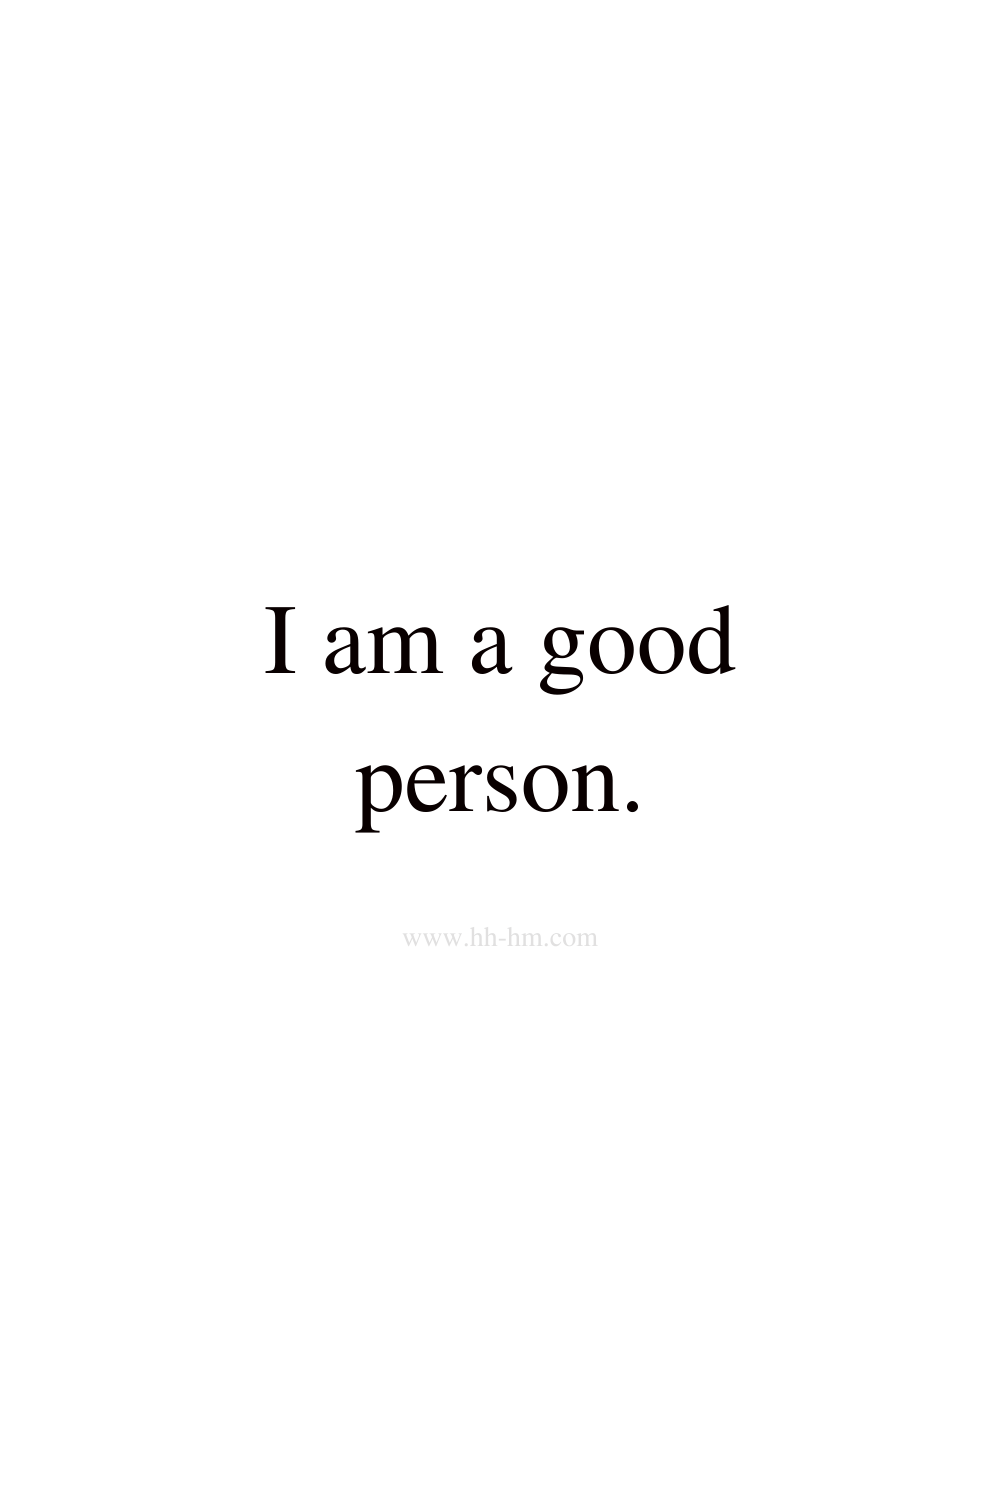 I am a good person - self love and self confidence morning affirmations